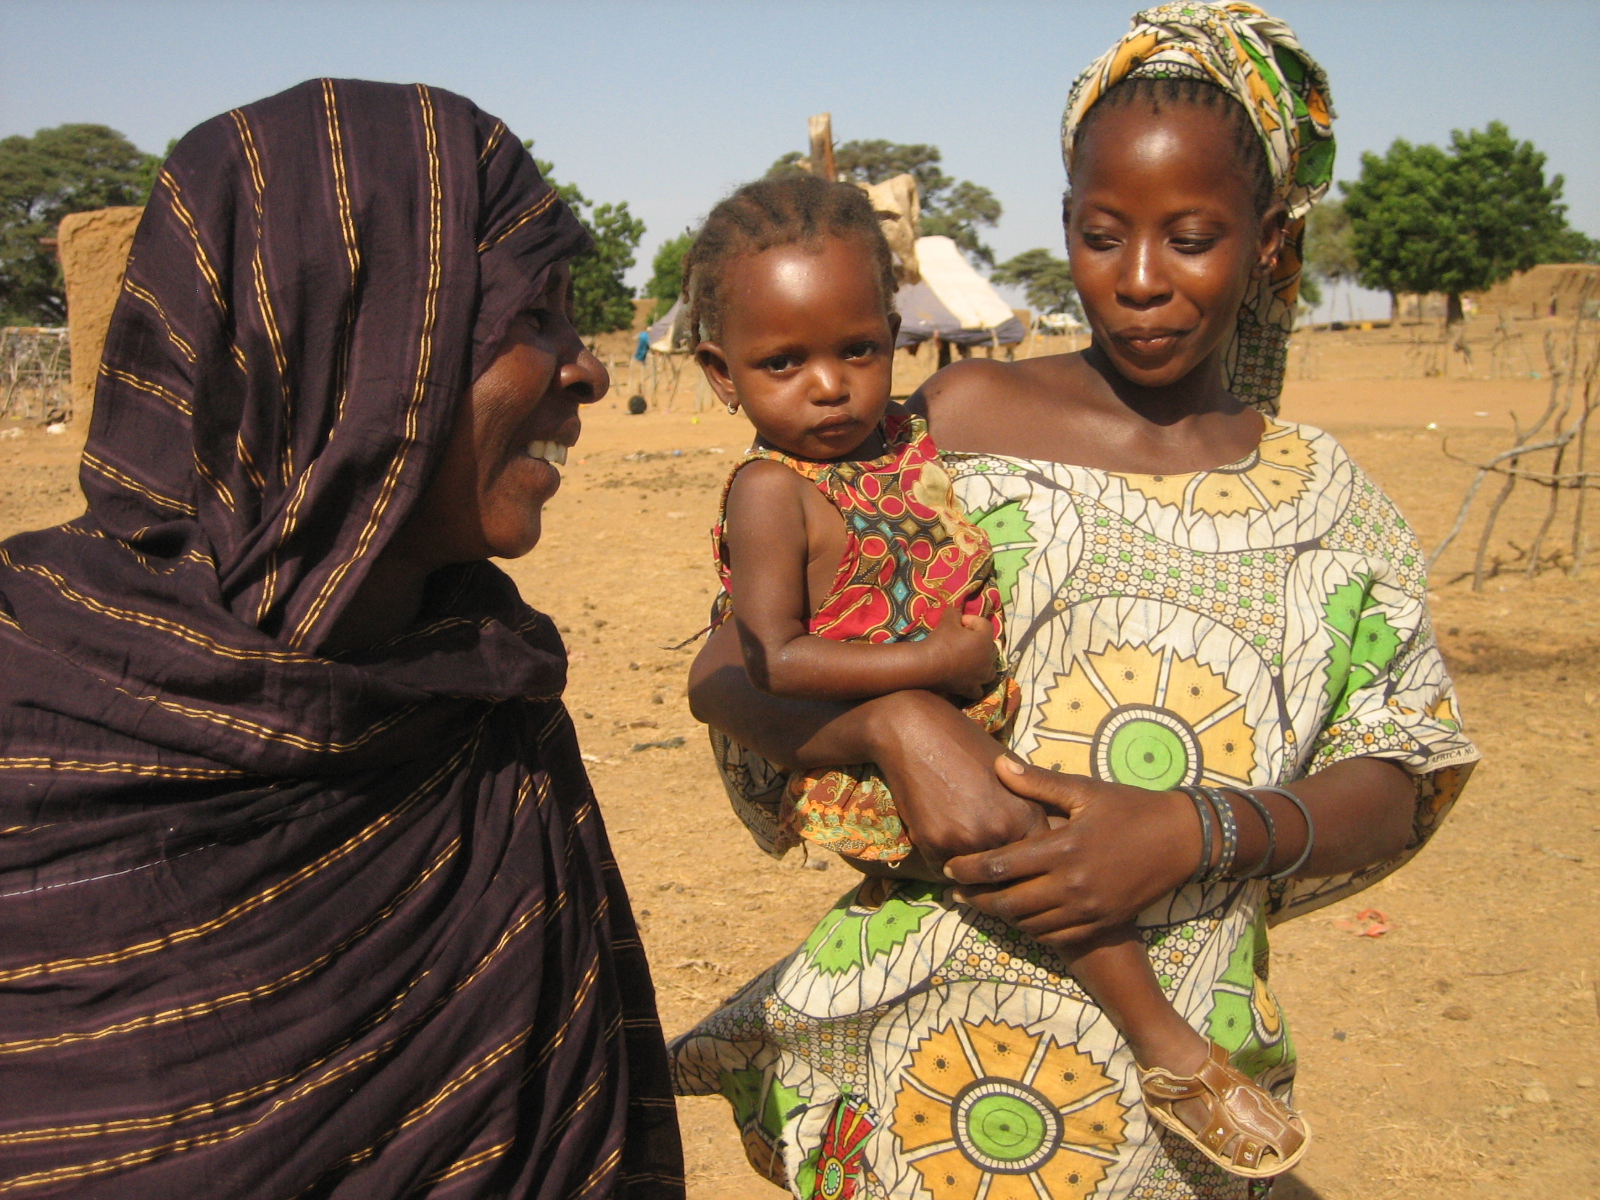 Aminetou Gemoul with her daughter and 18-month grand-daughter. In August, the little girl was tested for severe malnutrition thanks to her grand-mother, and has now almost completely recovered. Nima village, near Kaédi, Southern Mauritania, November 2009